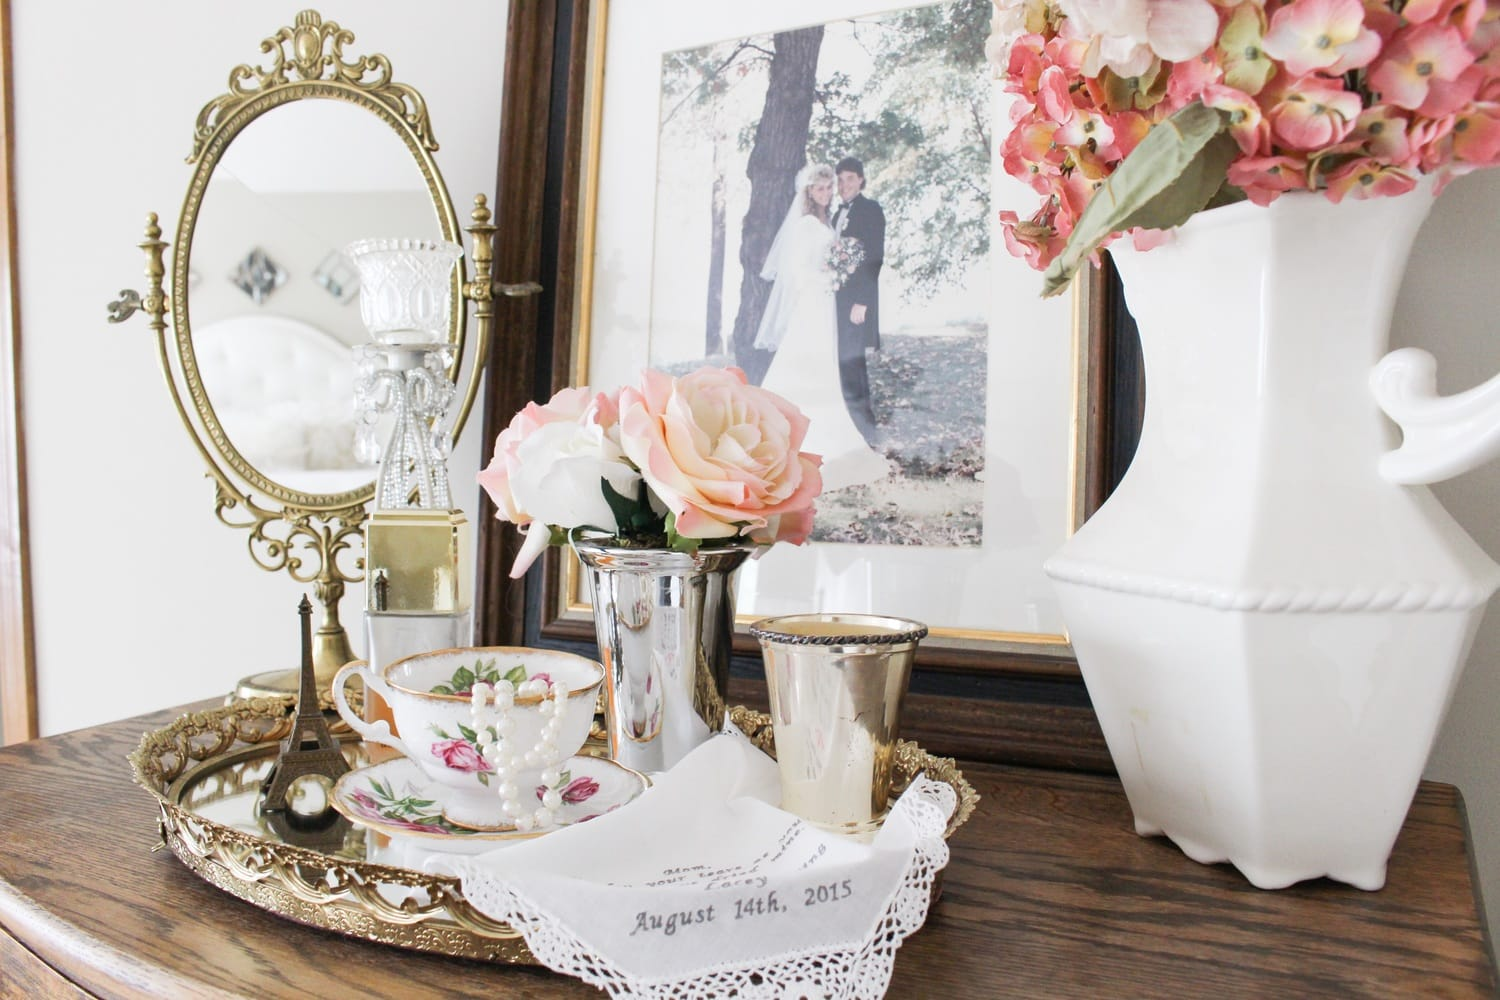 Adding Glam to Your Boudoir | Styled with Lace | SIOMT Feature